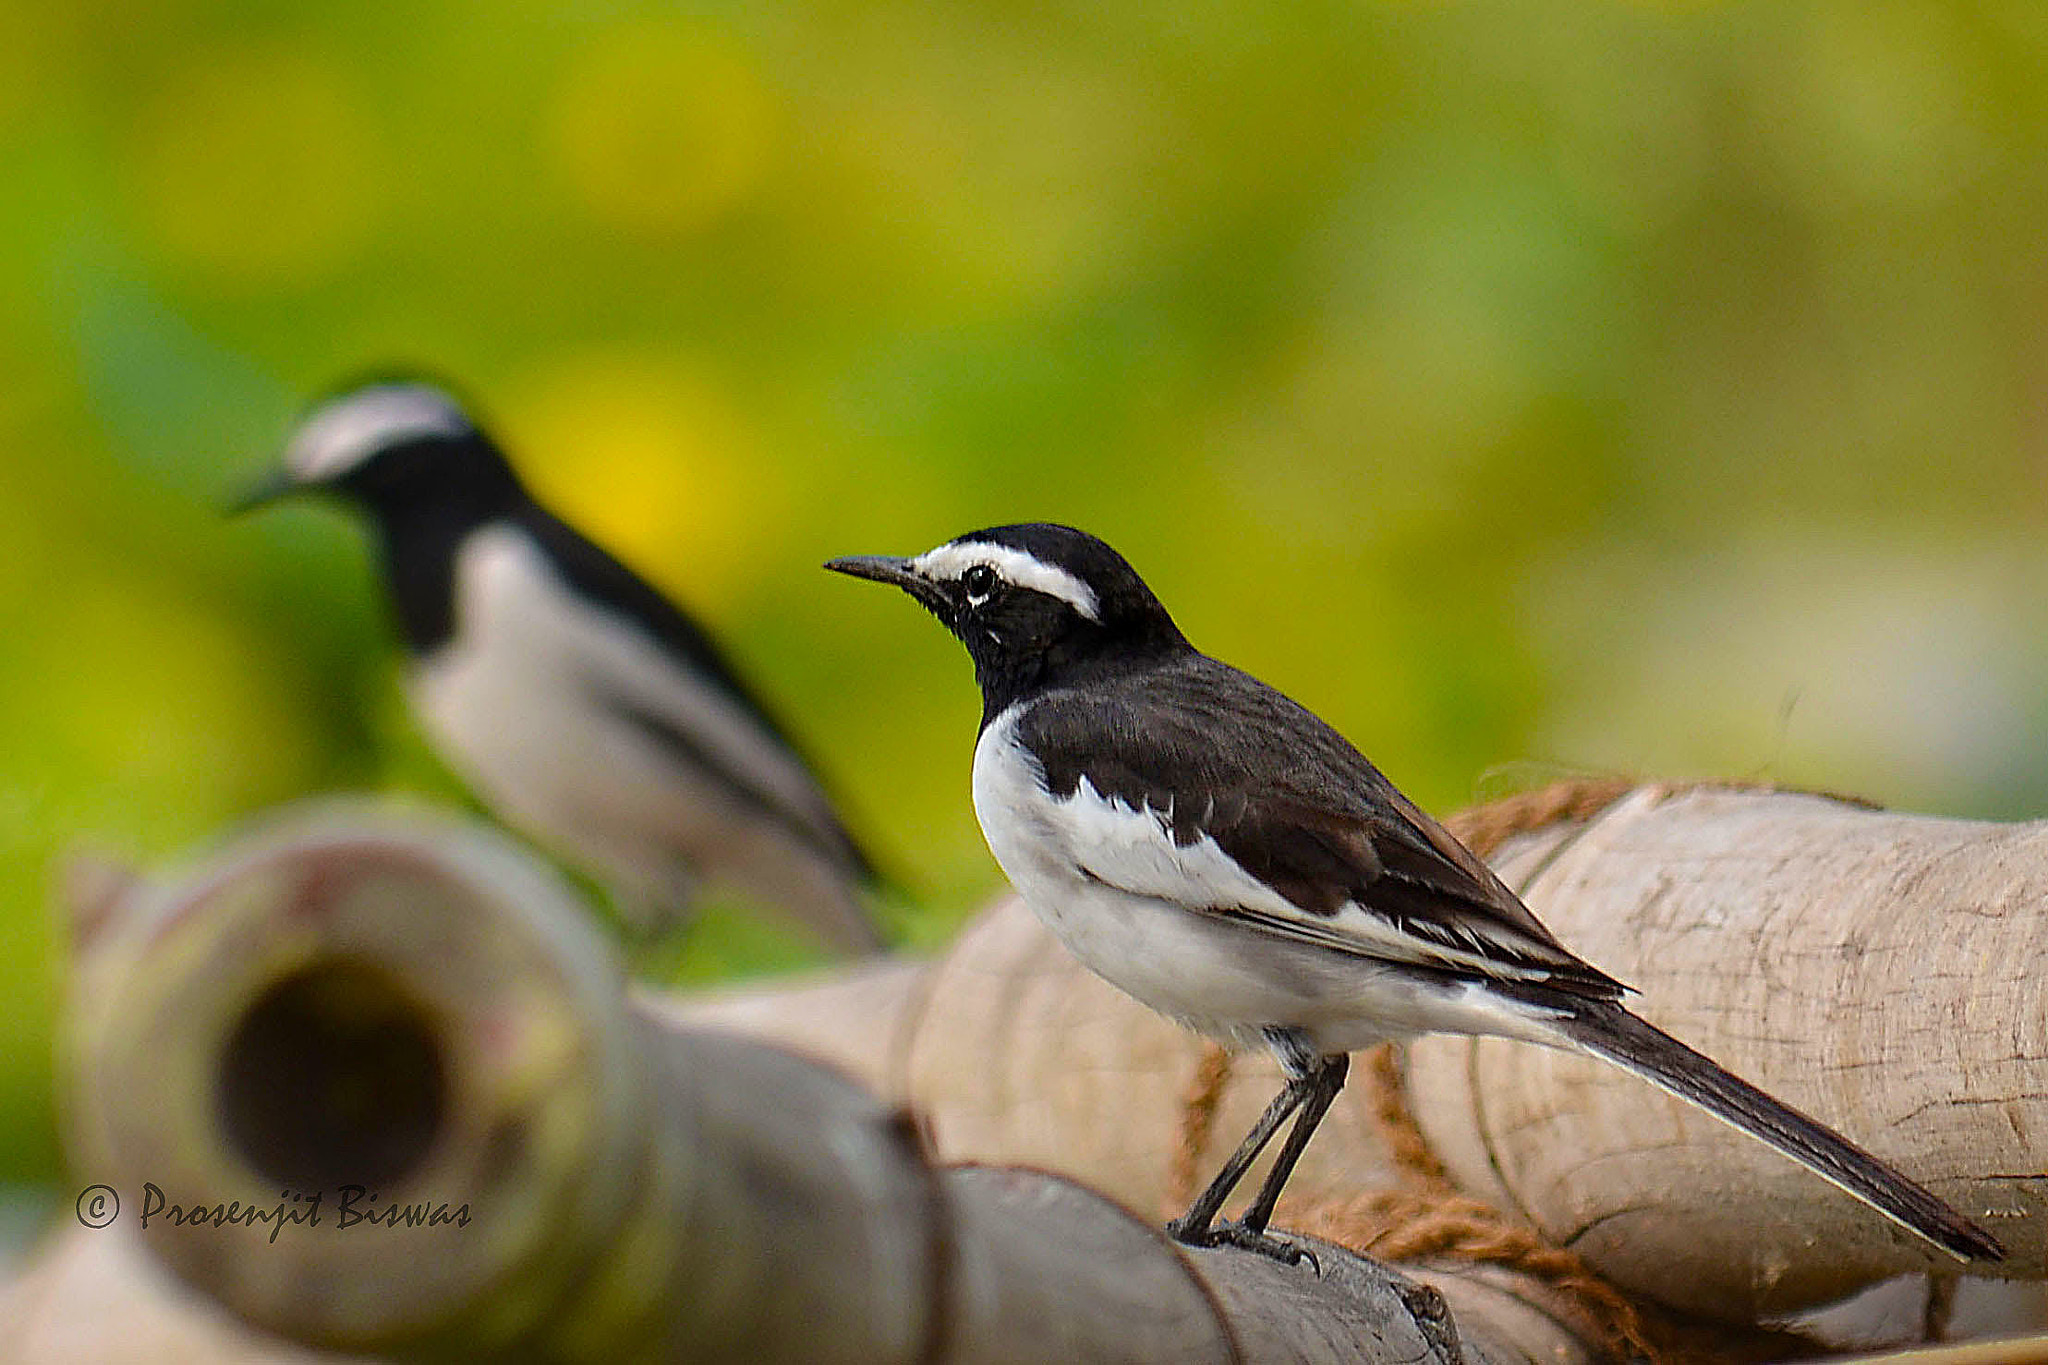 Photograph White browed wagtail by Prosenjit Biswas on 500px